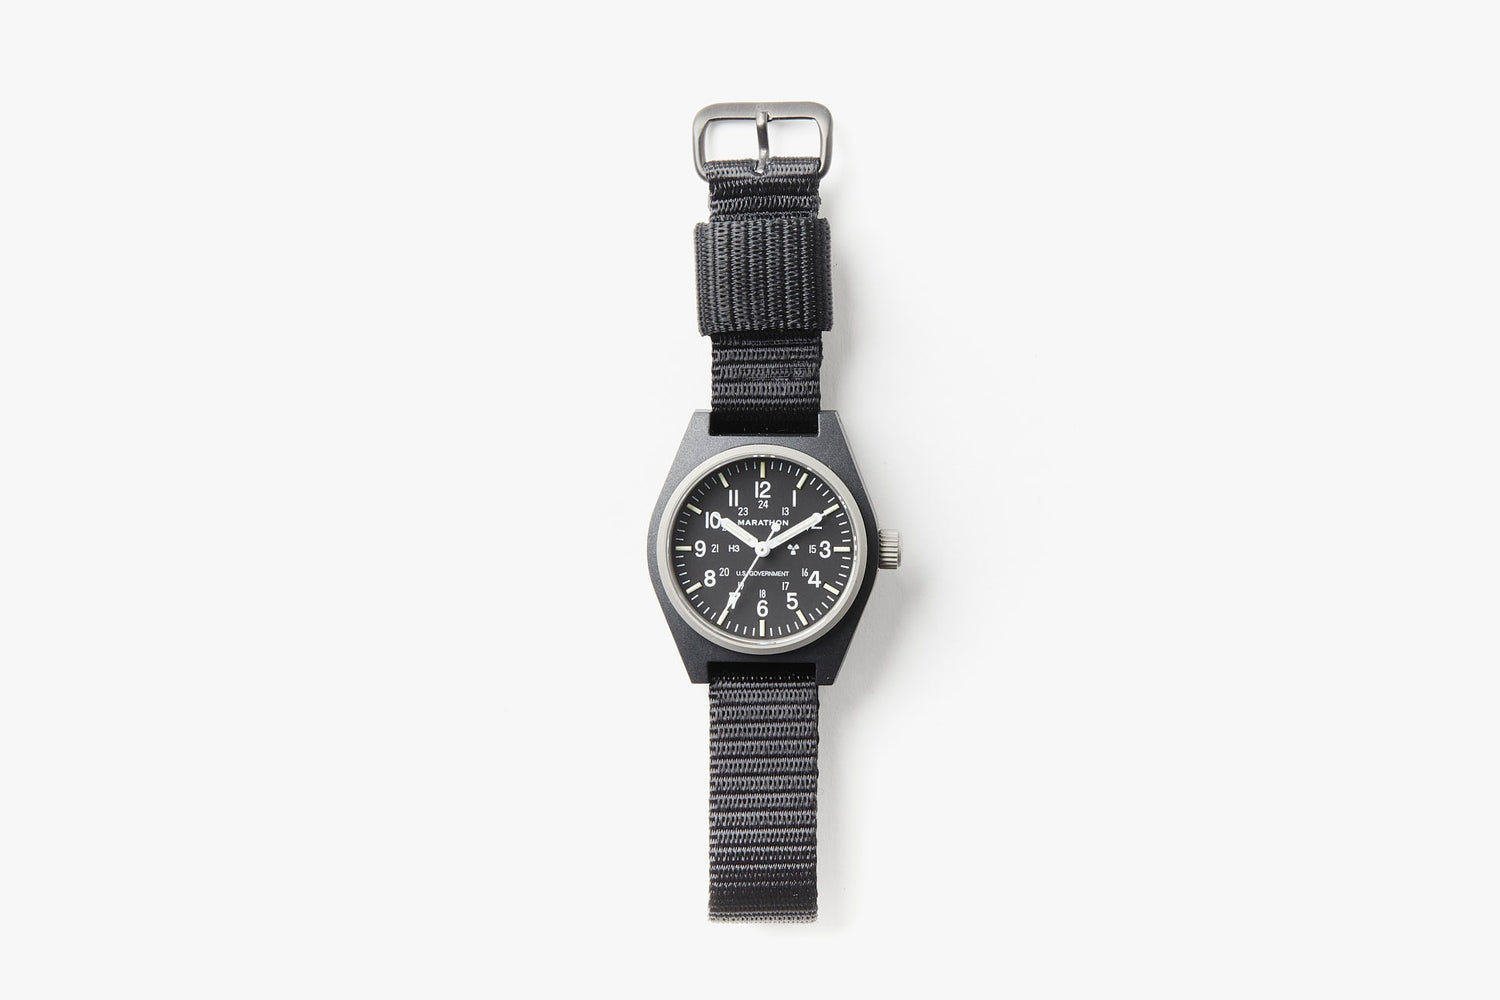 Marathon General Purpose Quartz Composite Watch - Black - Top-down image of watch laying flat